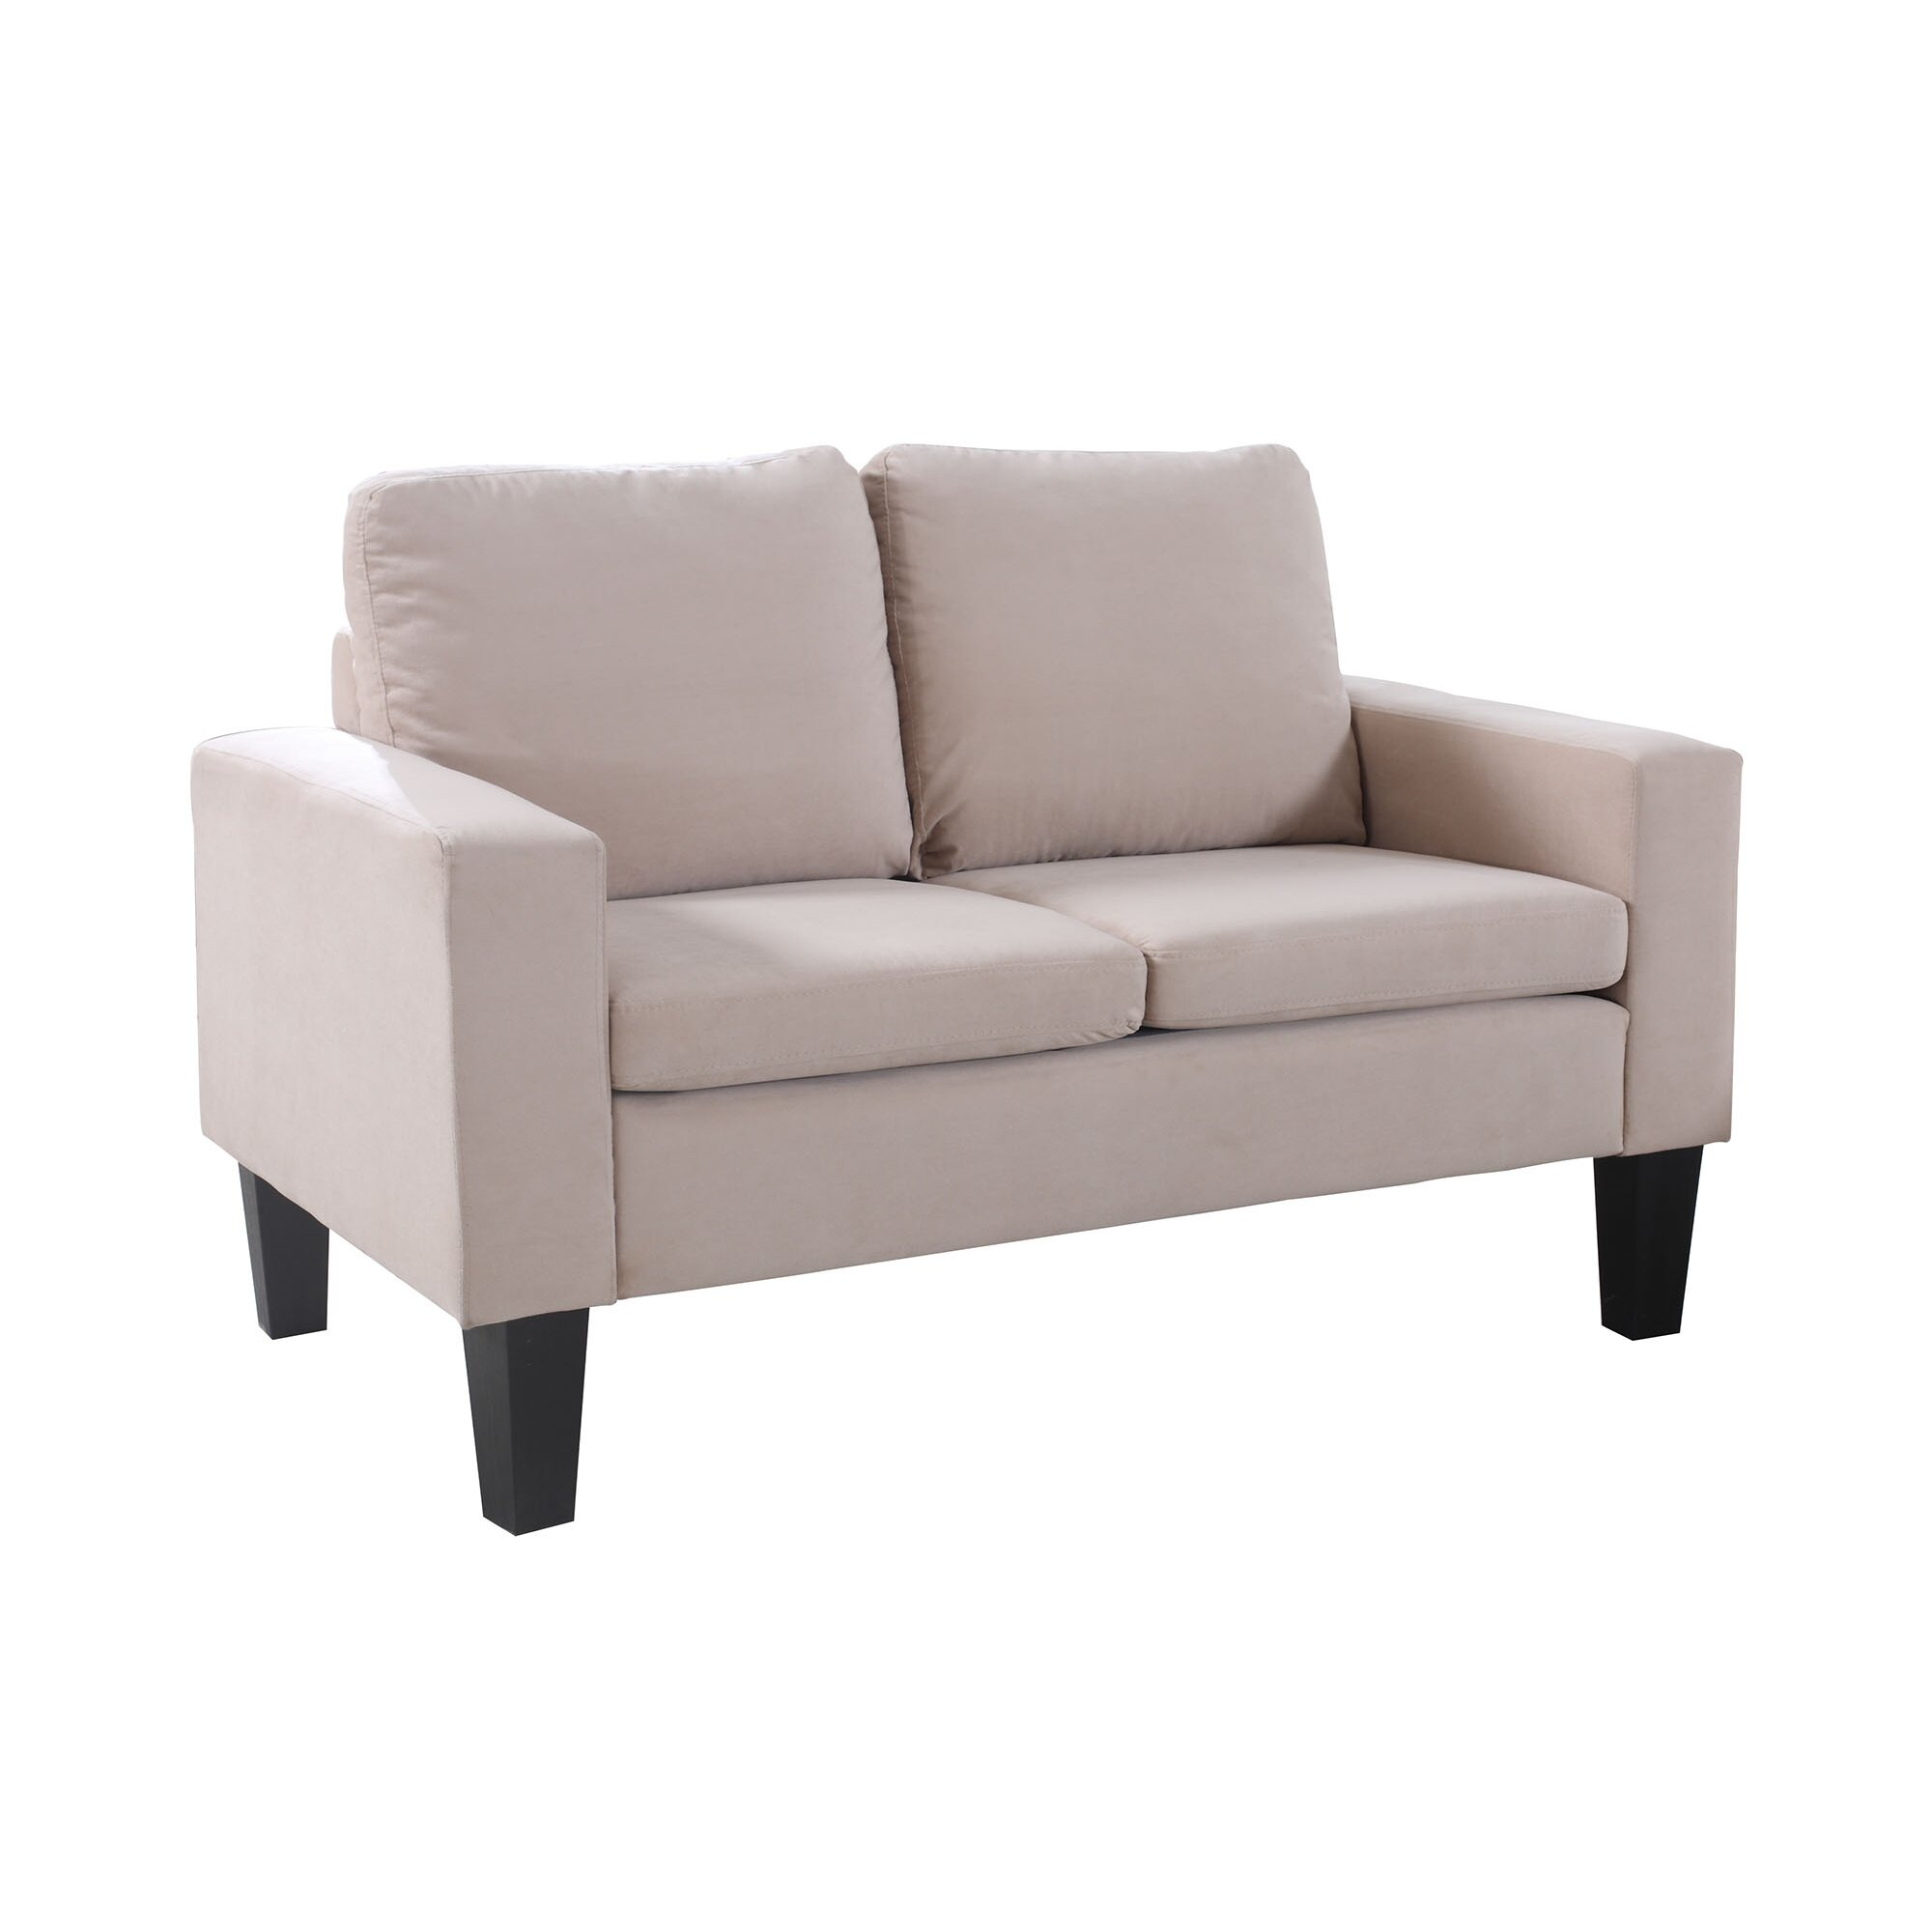 Quick Delivery Sofa Bed hmmi